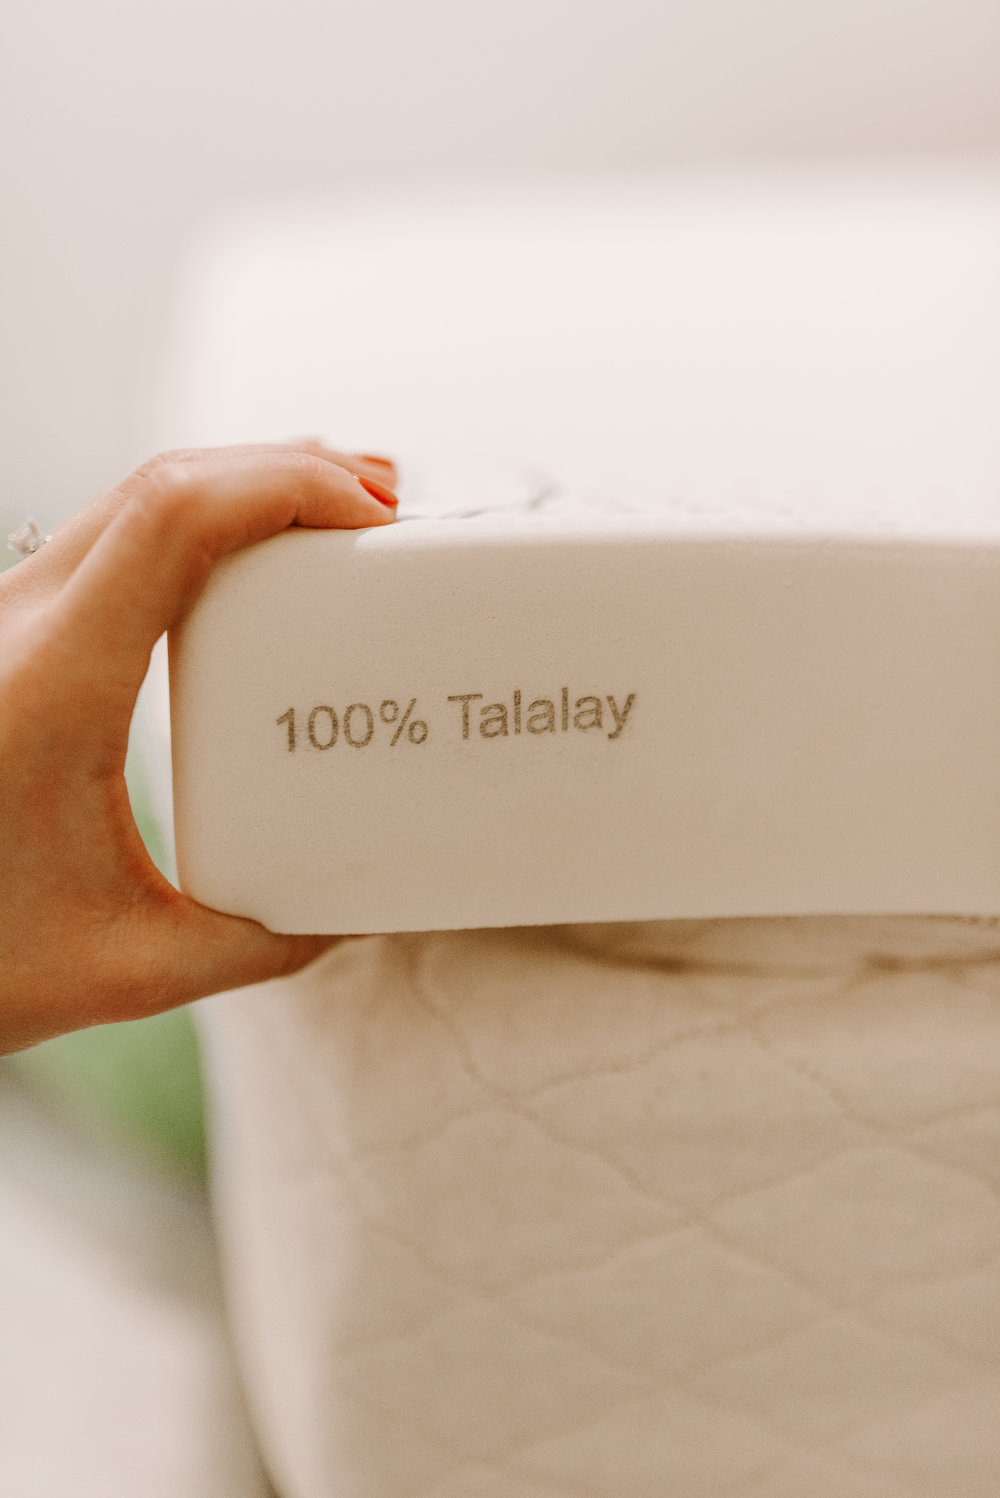 100% Talalay Latex